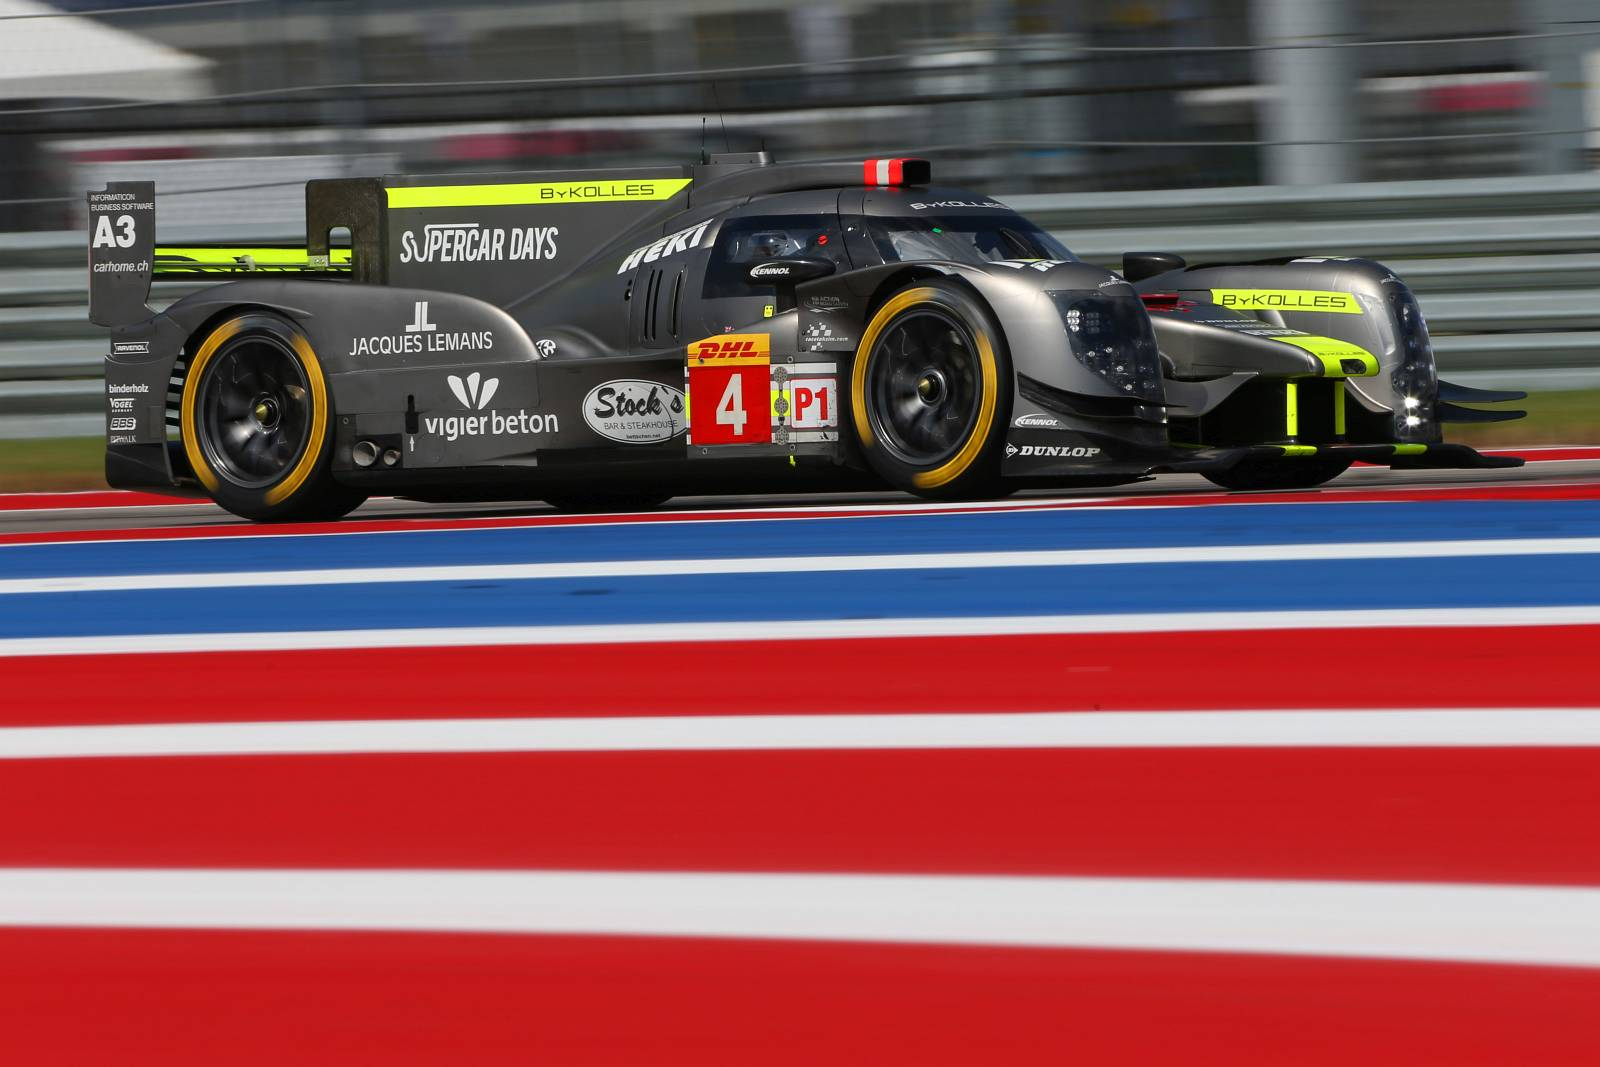 byKOLLES-racing-WEC-USA-2016--26